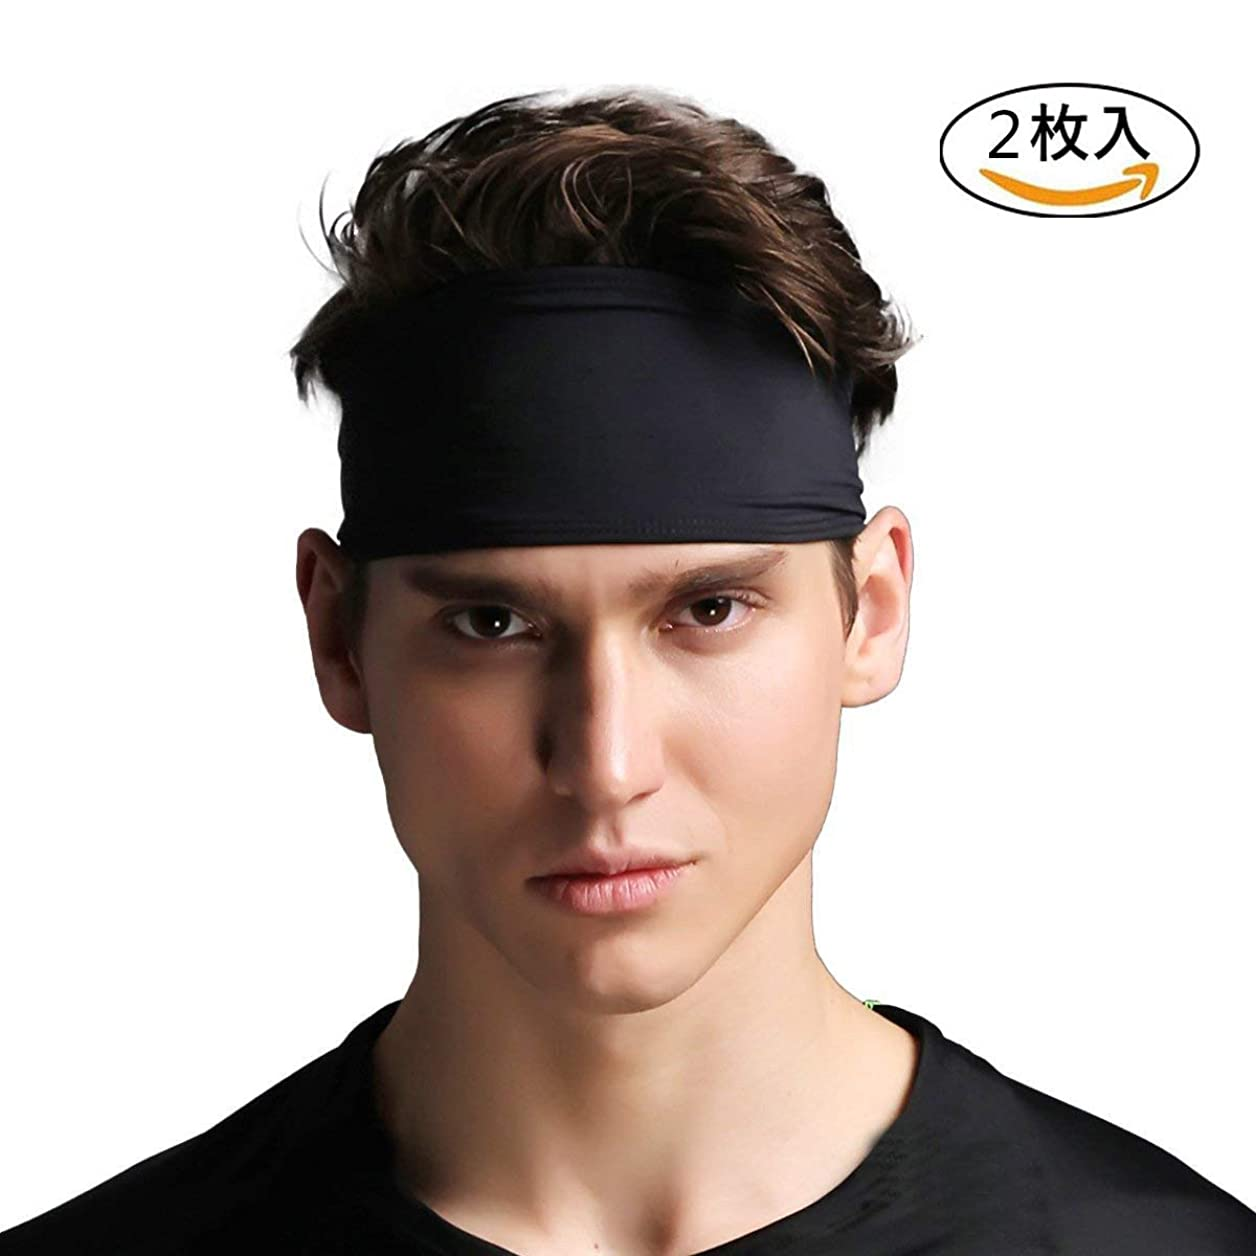 ハブブ勝利した誘うTEKXYZ Boxing Reflex Ball, Softer, Lighter and Safer than Boxing Tennis Ball Headband, Perfect for Hand Eye Coordination Training and Punching Speed Improvement